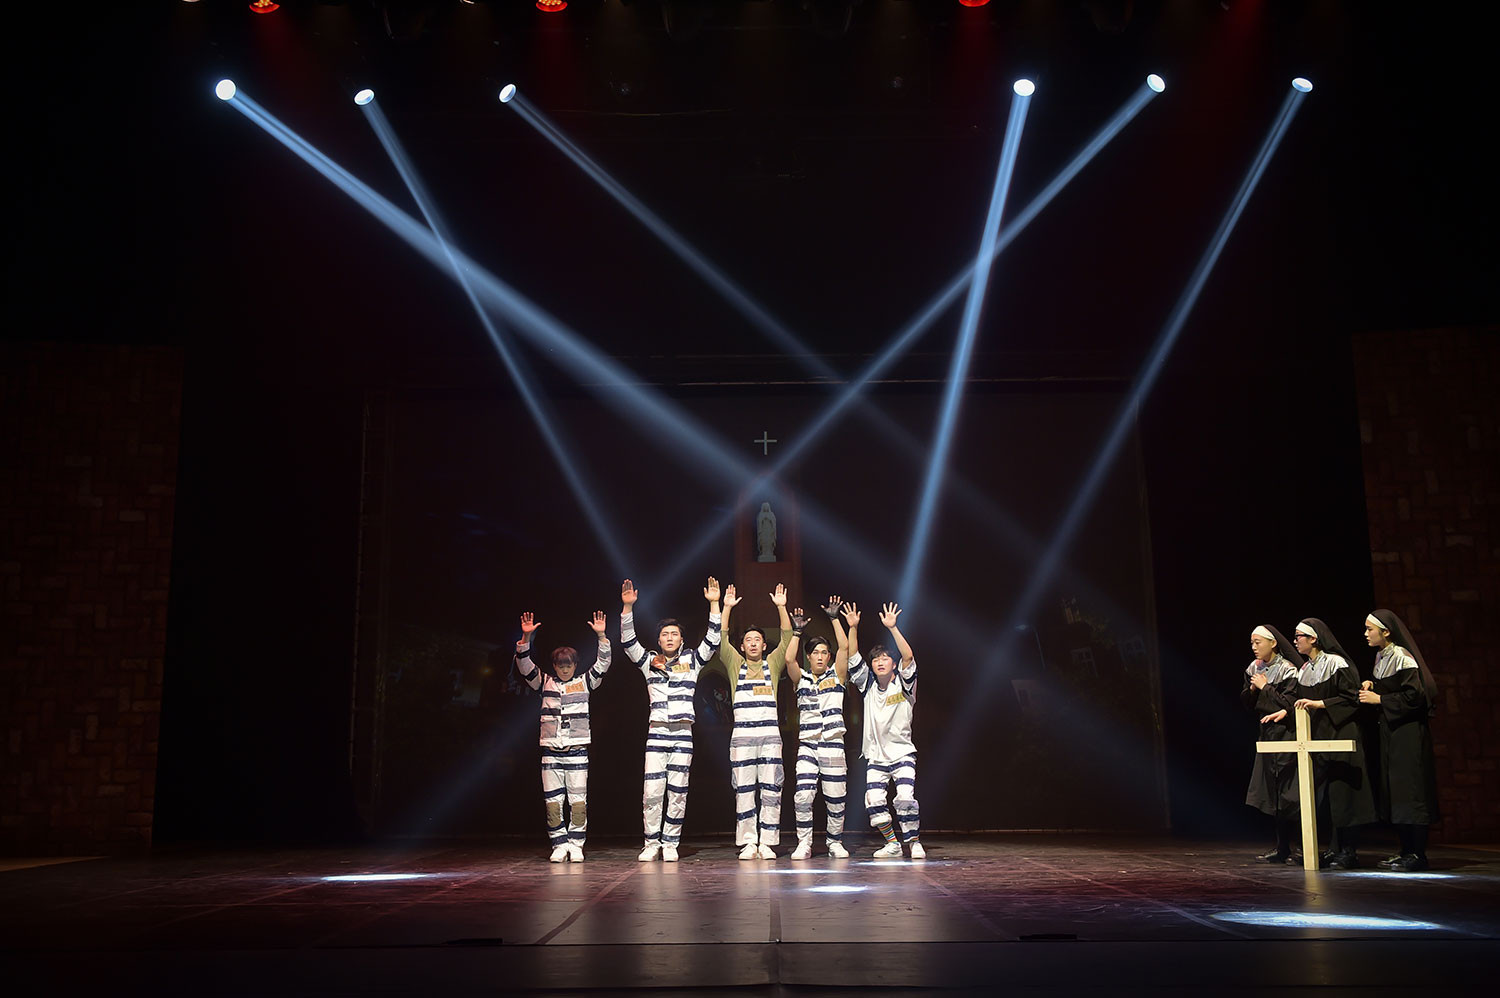 Break Out - The Most Popular and Dynamic K-Dance Extreme Comedy from Korea is Back!